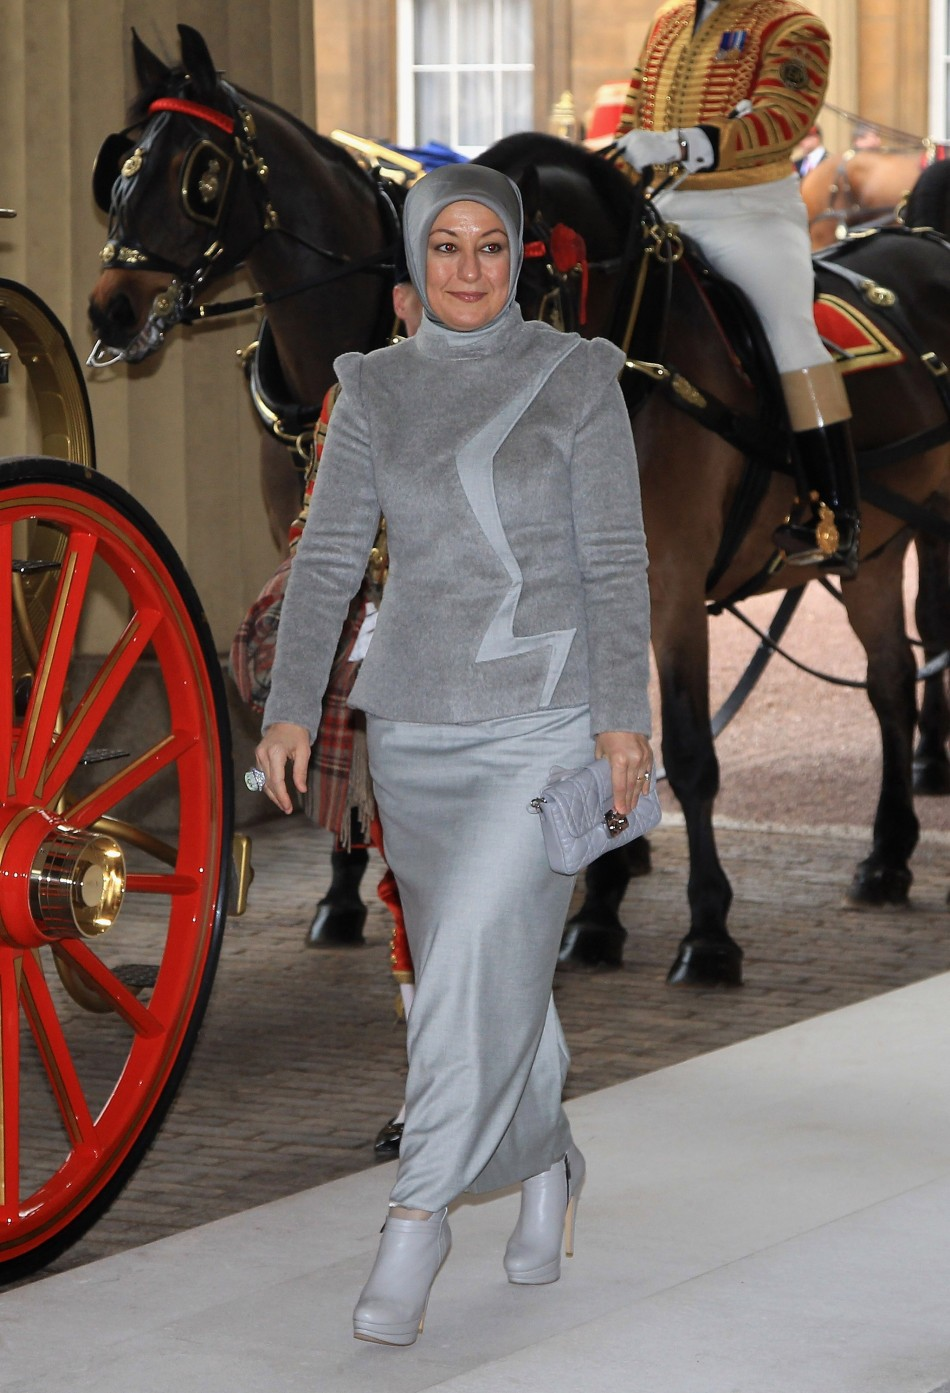 Hayrunnisa Gul, wife of Turkey's President Abdullah Gul arrives at Buckingham Palace during a state visit in London November 22, 2011.